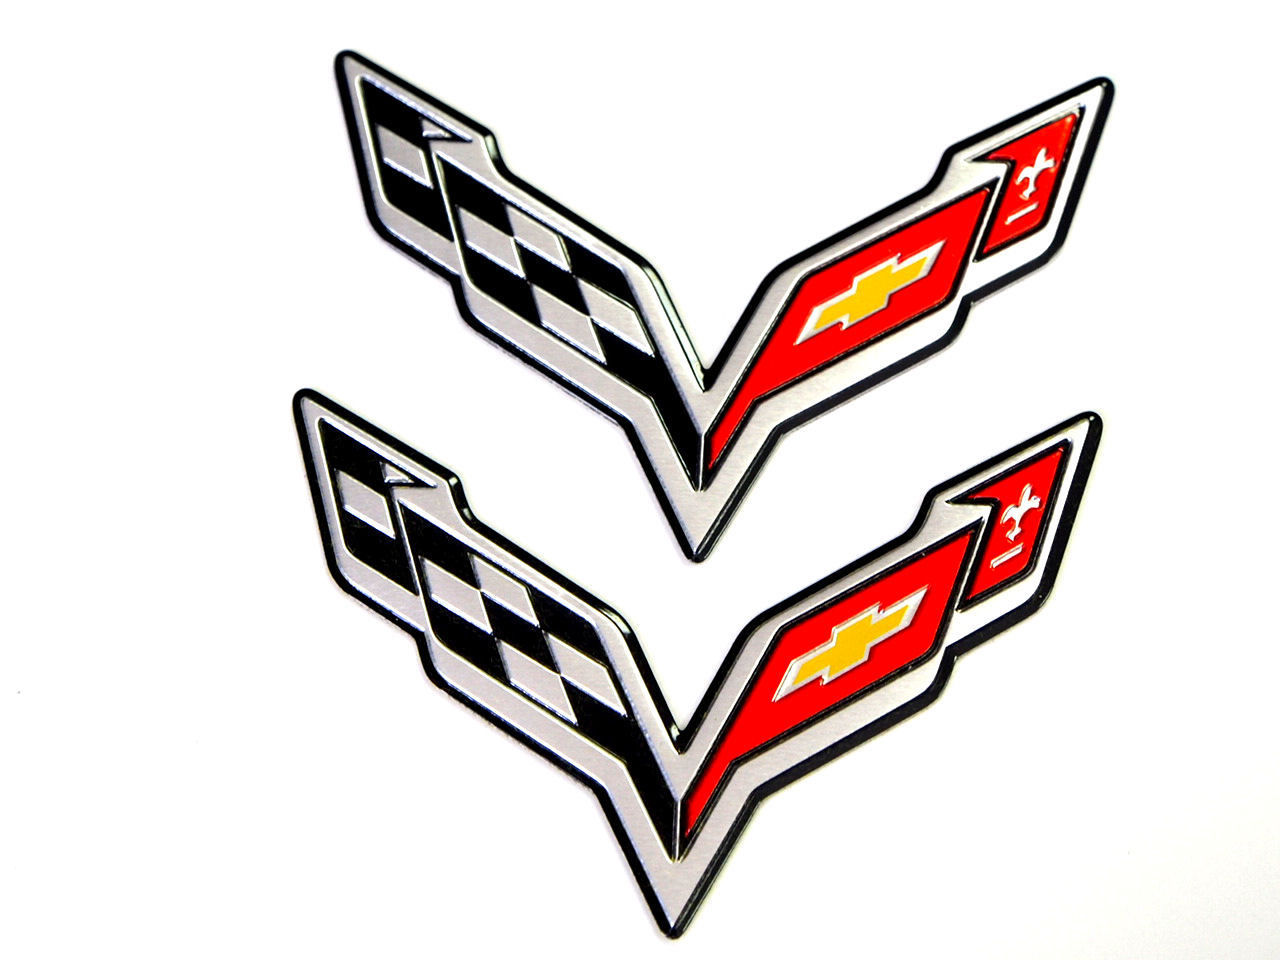 C7 Corvette Stingray Flag, C7 Emblems, C7 Corvette Emblem, Fender Badges, Pair